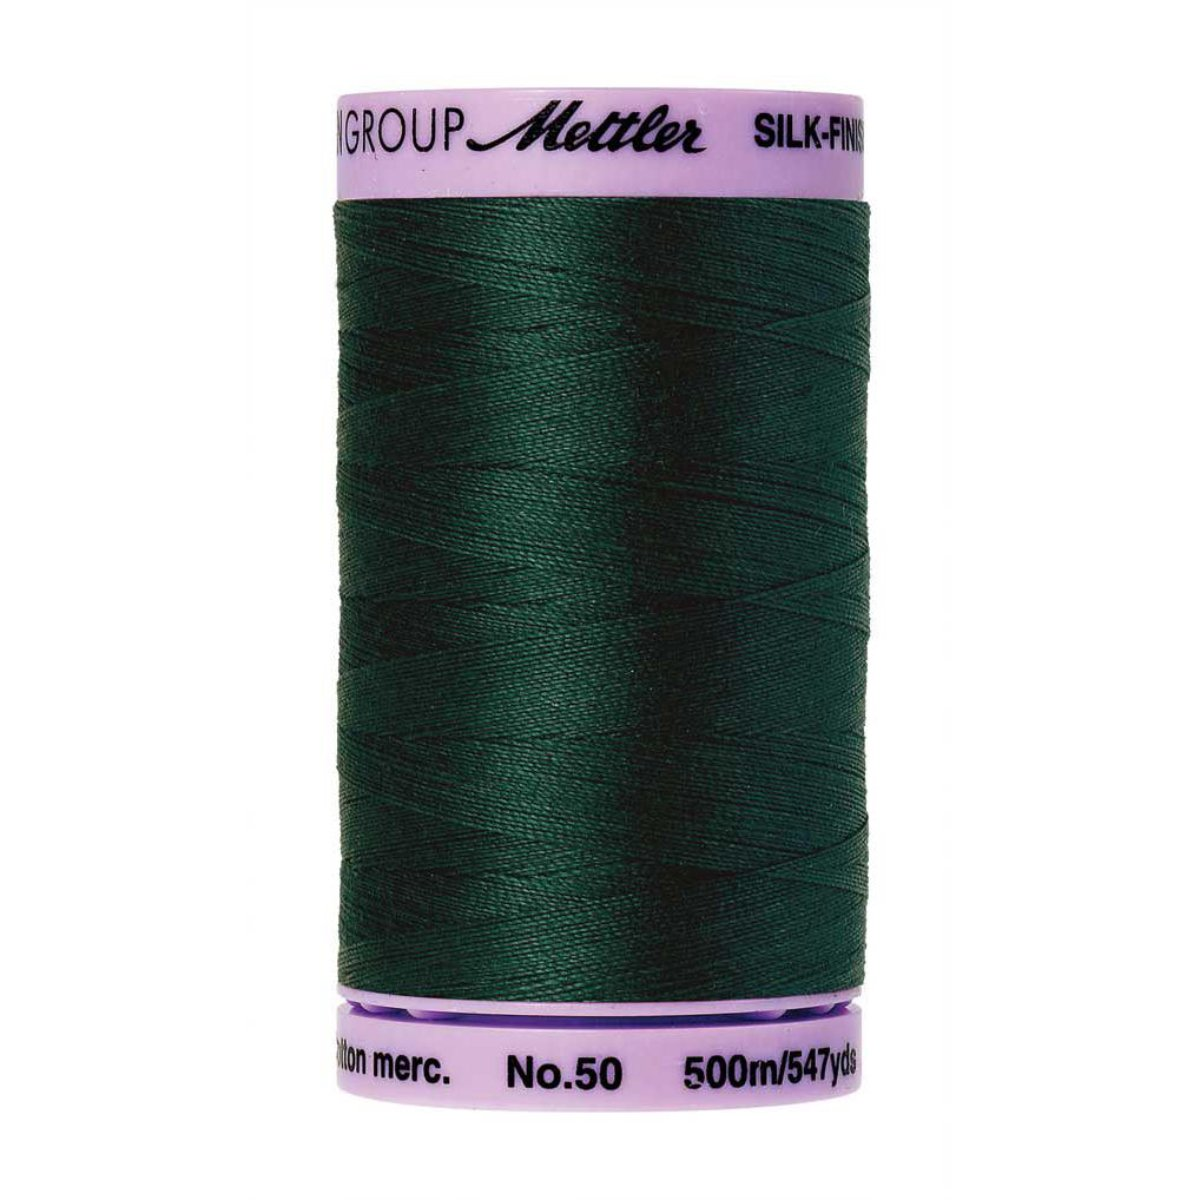 Mettler Silk Finish Cotton Thread Swamp